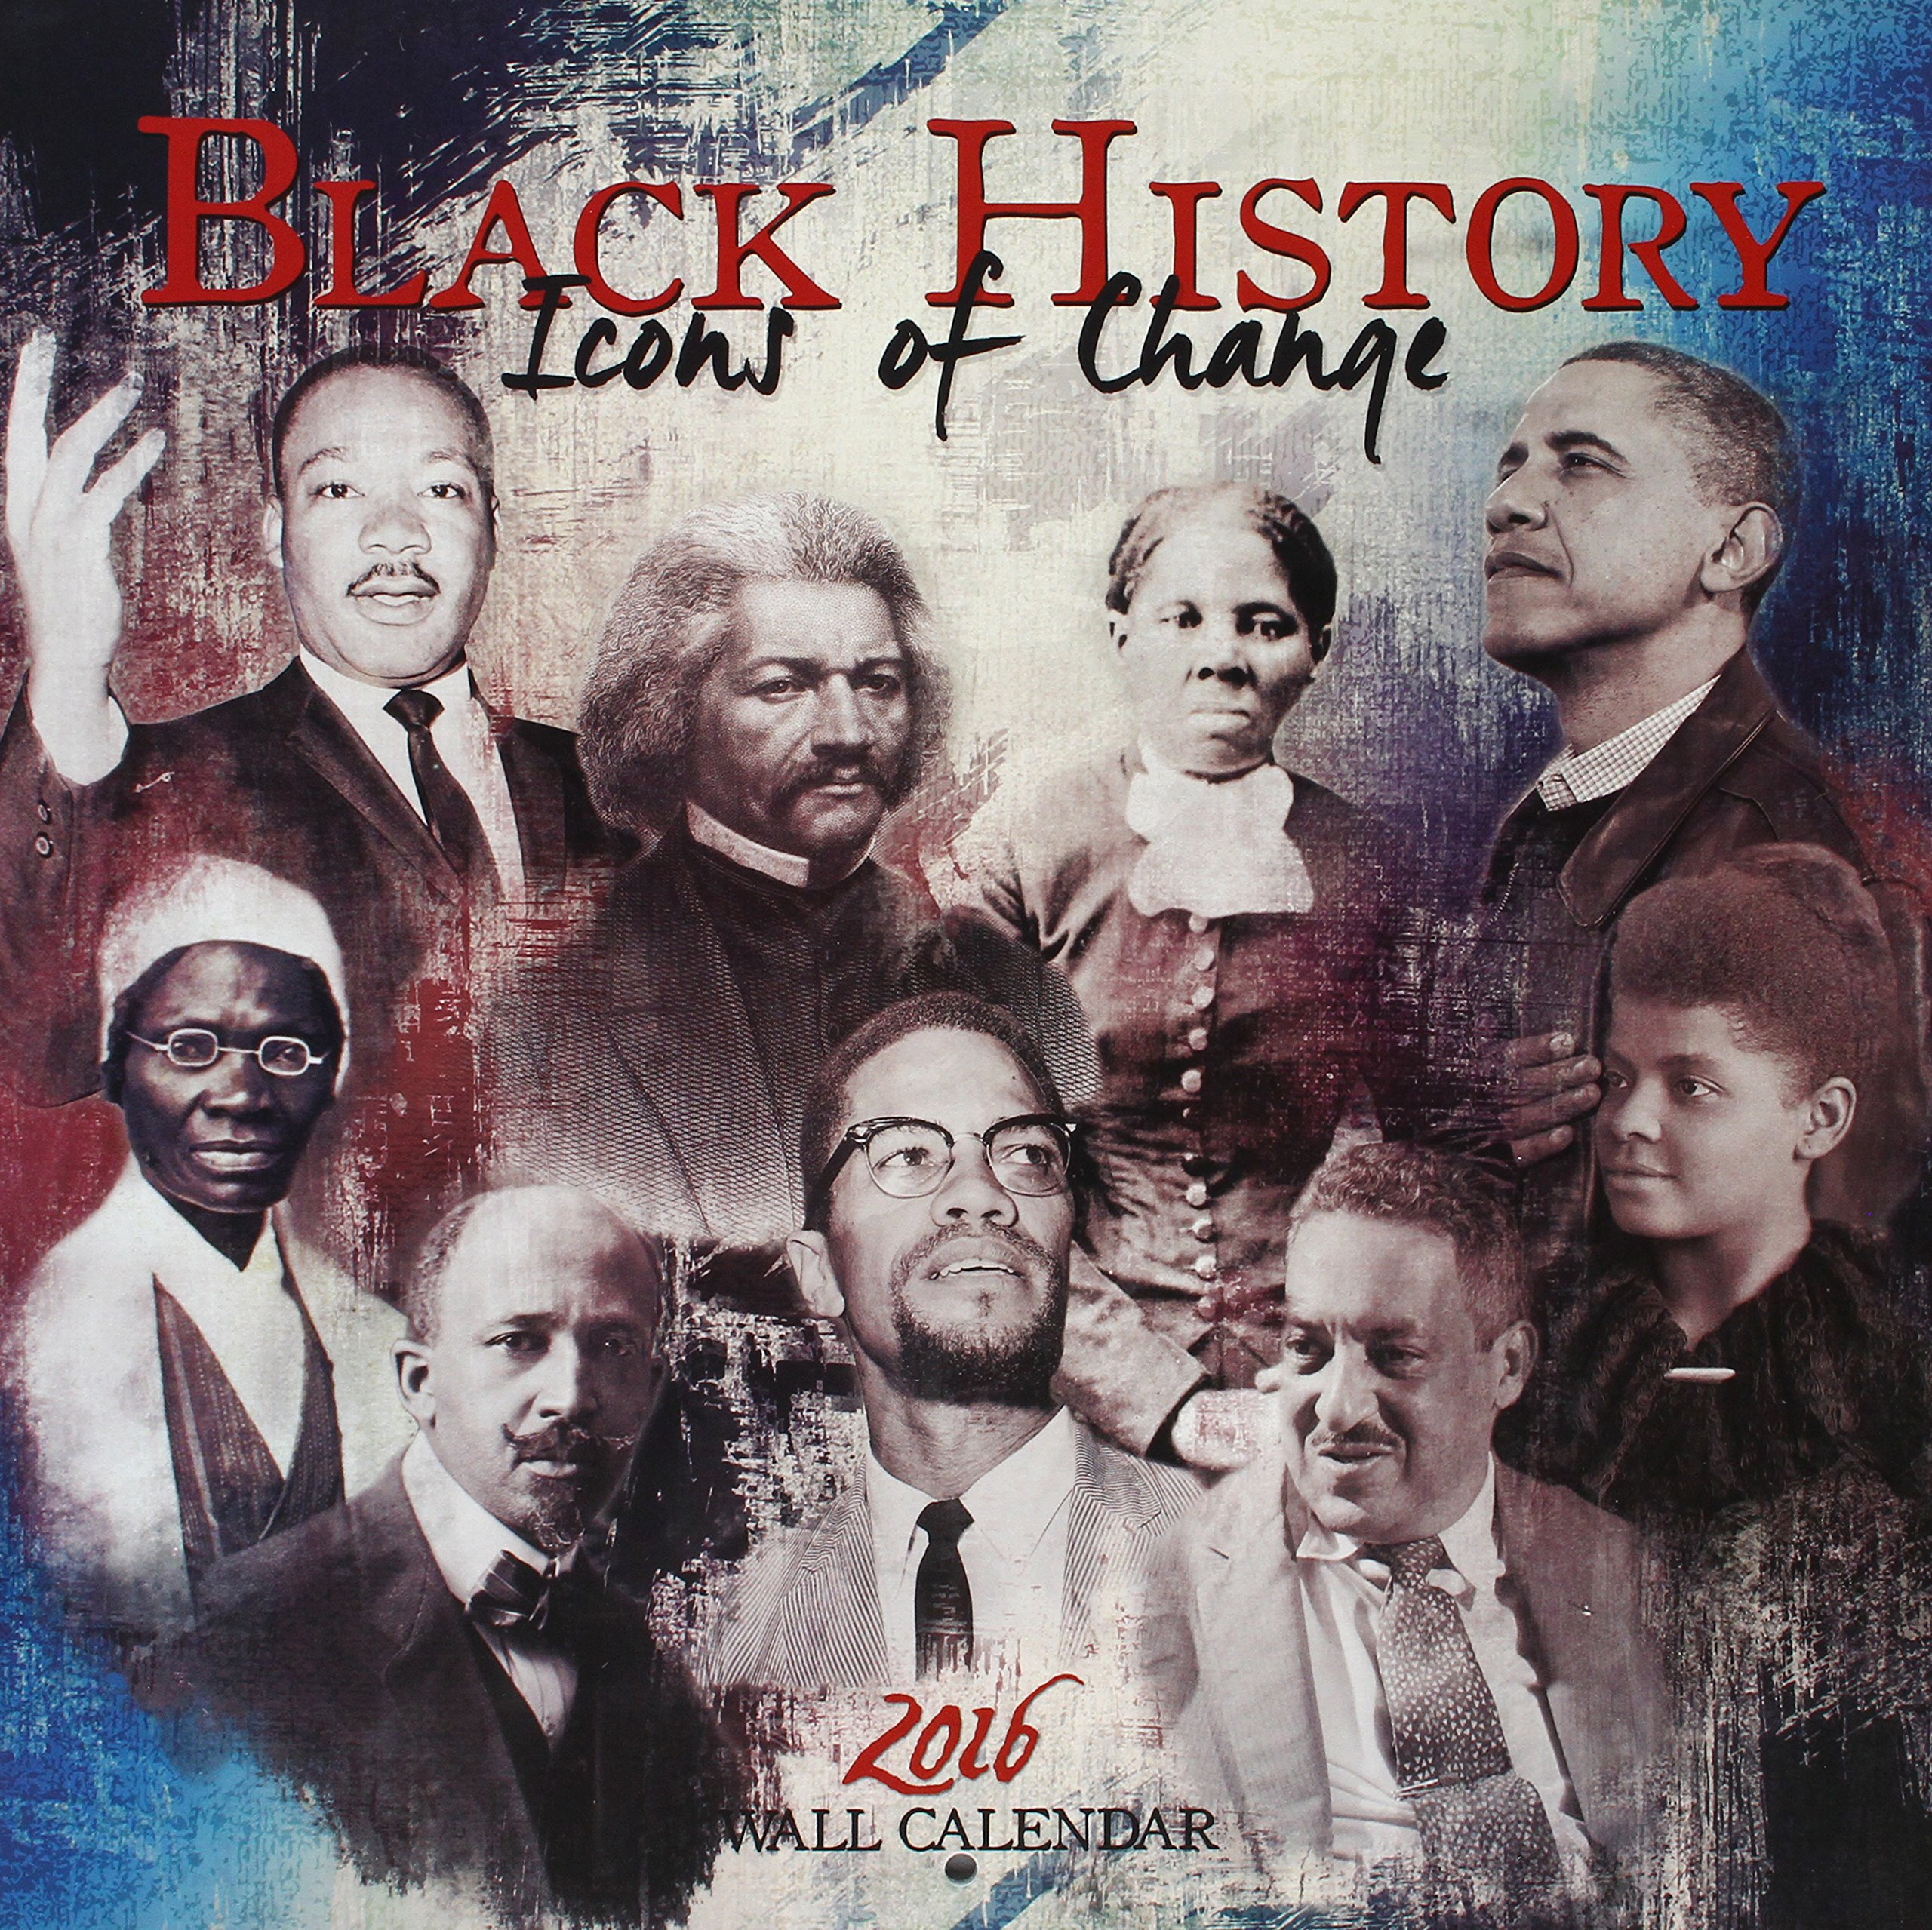 Black History   Icons Of Change 2016 Calendar